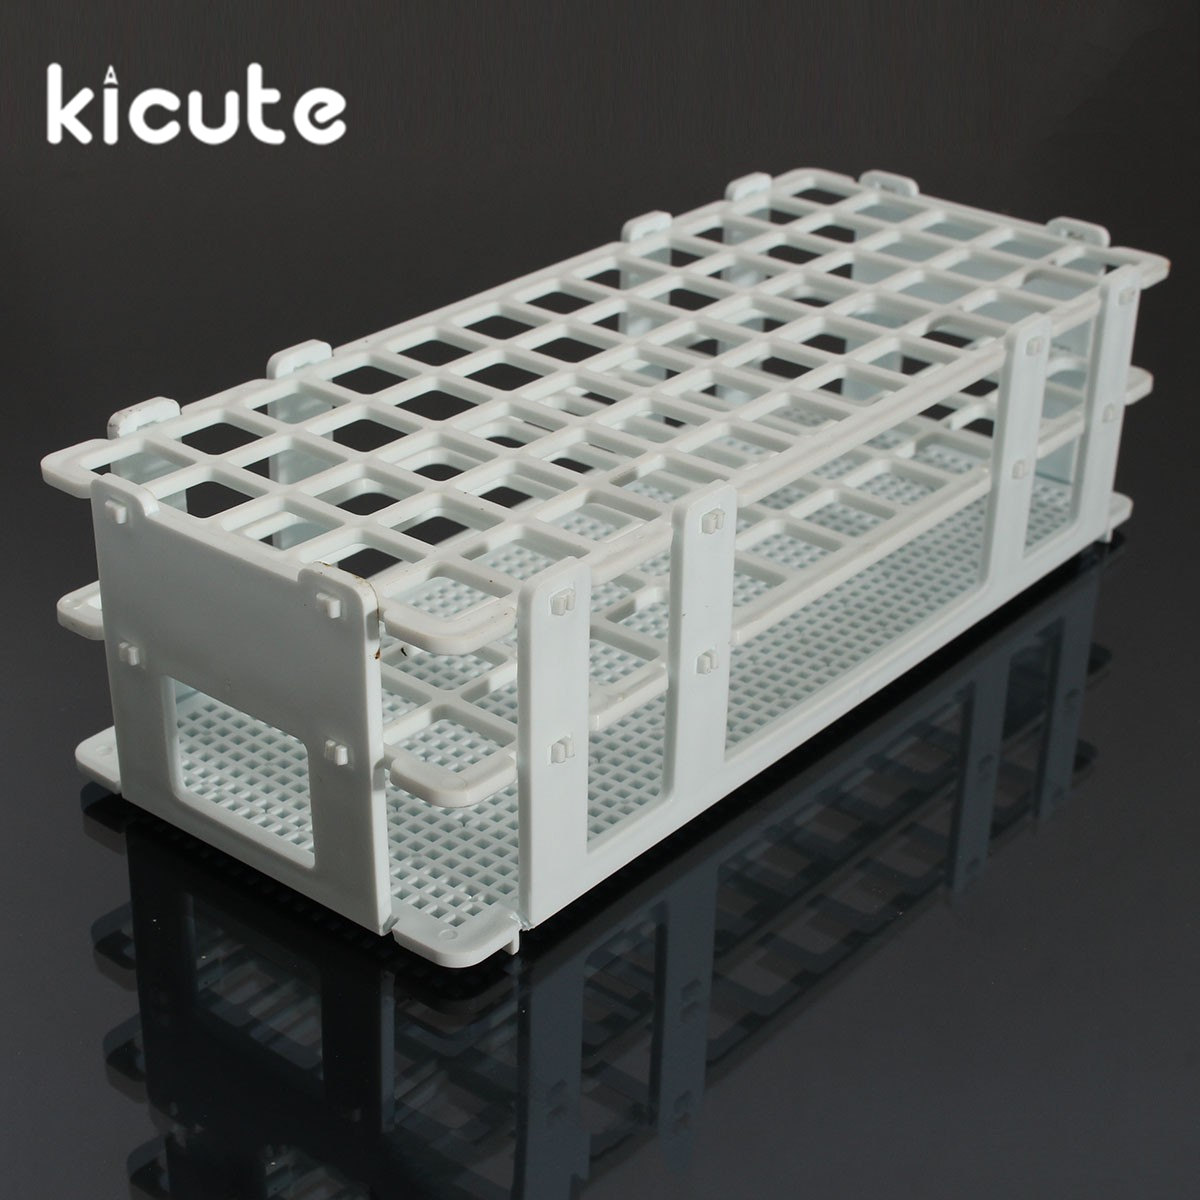 Kicute 60Holes 16mm 3 Layers Plastic Test Tube Rack Holder Support Burette Stand Laboratory Test tube Stand Shelf Lab Supplies 60 piece tube 16x150mm clear plastic test tube set with caps and rack